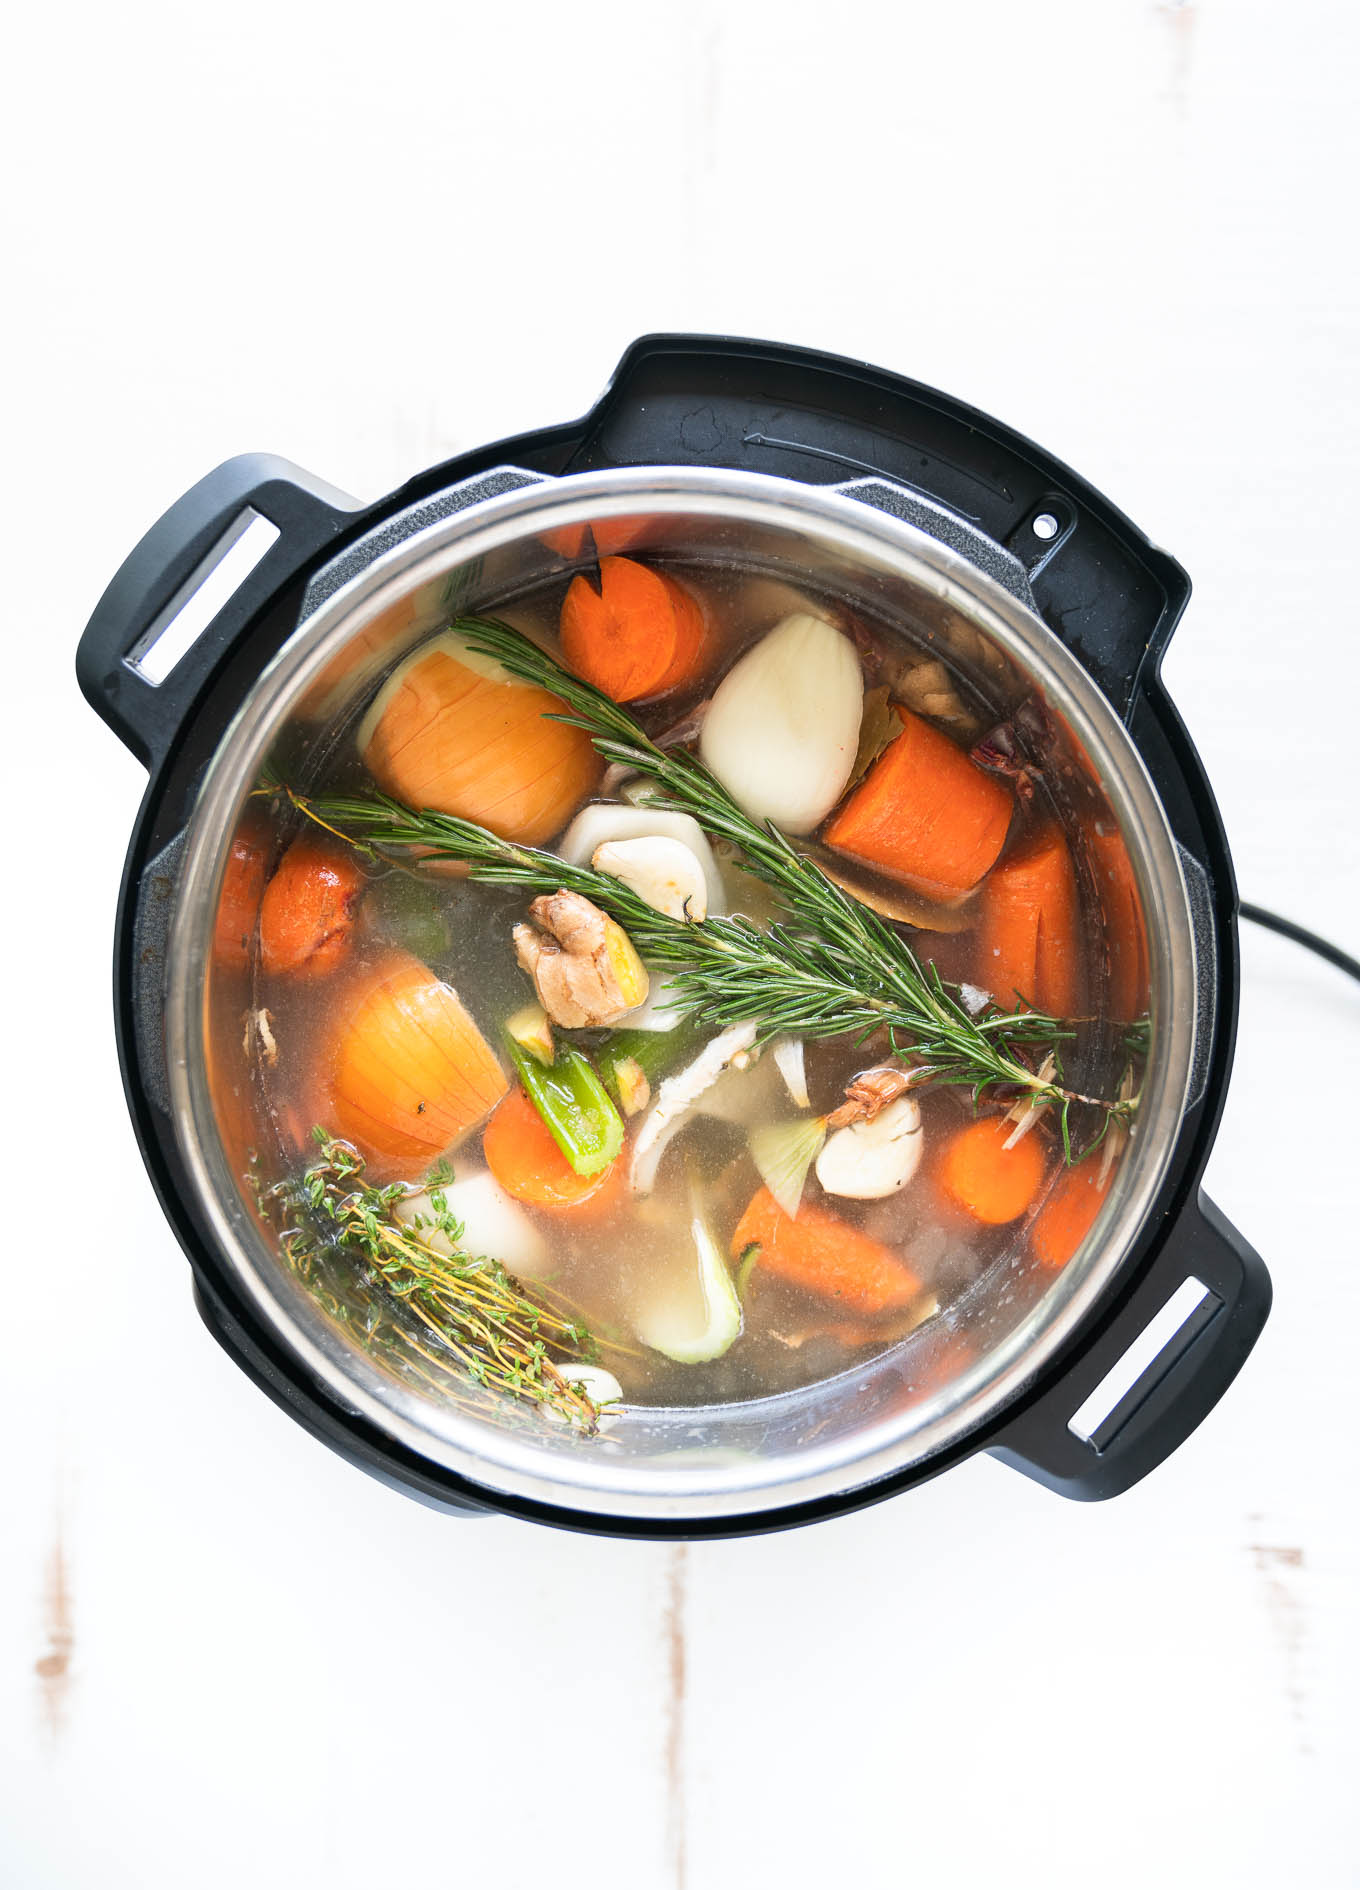 Instant Pot Bone Broth with veggies just covered in water